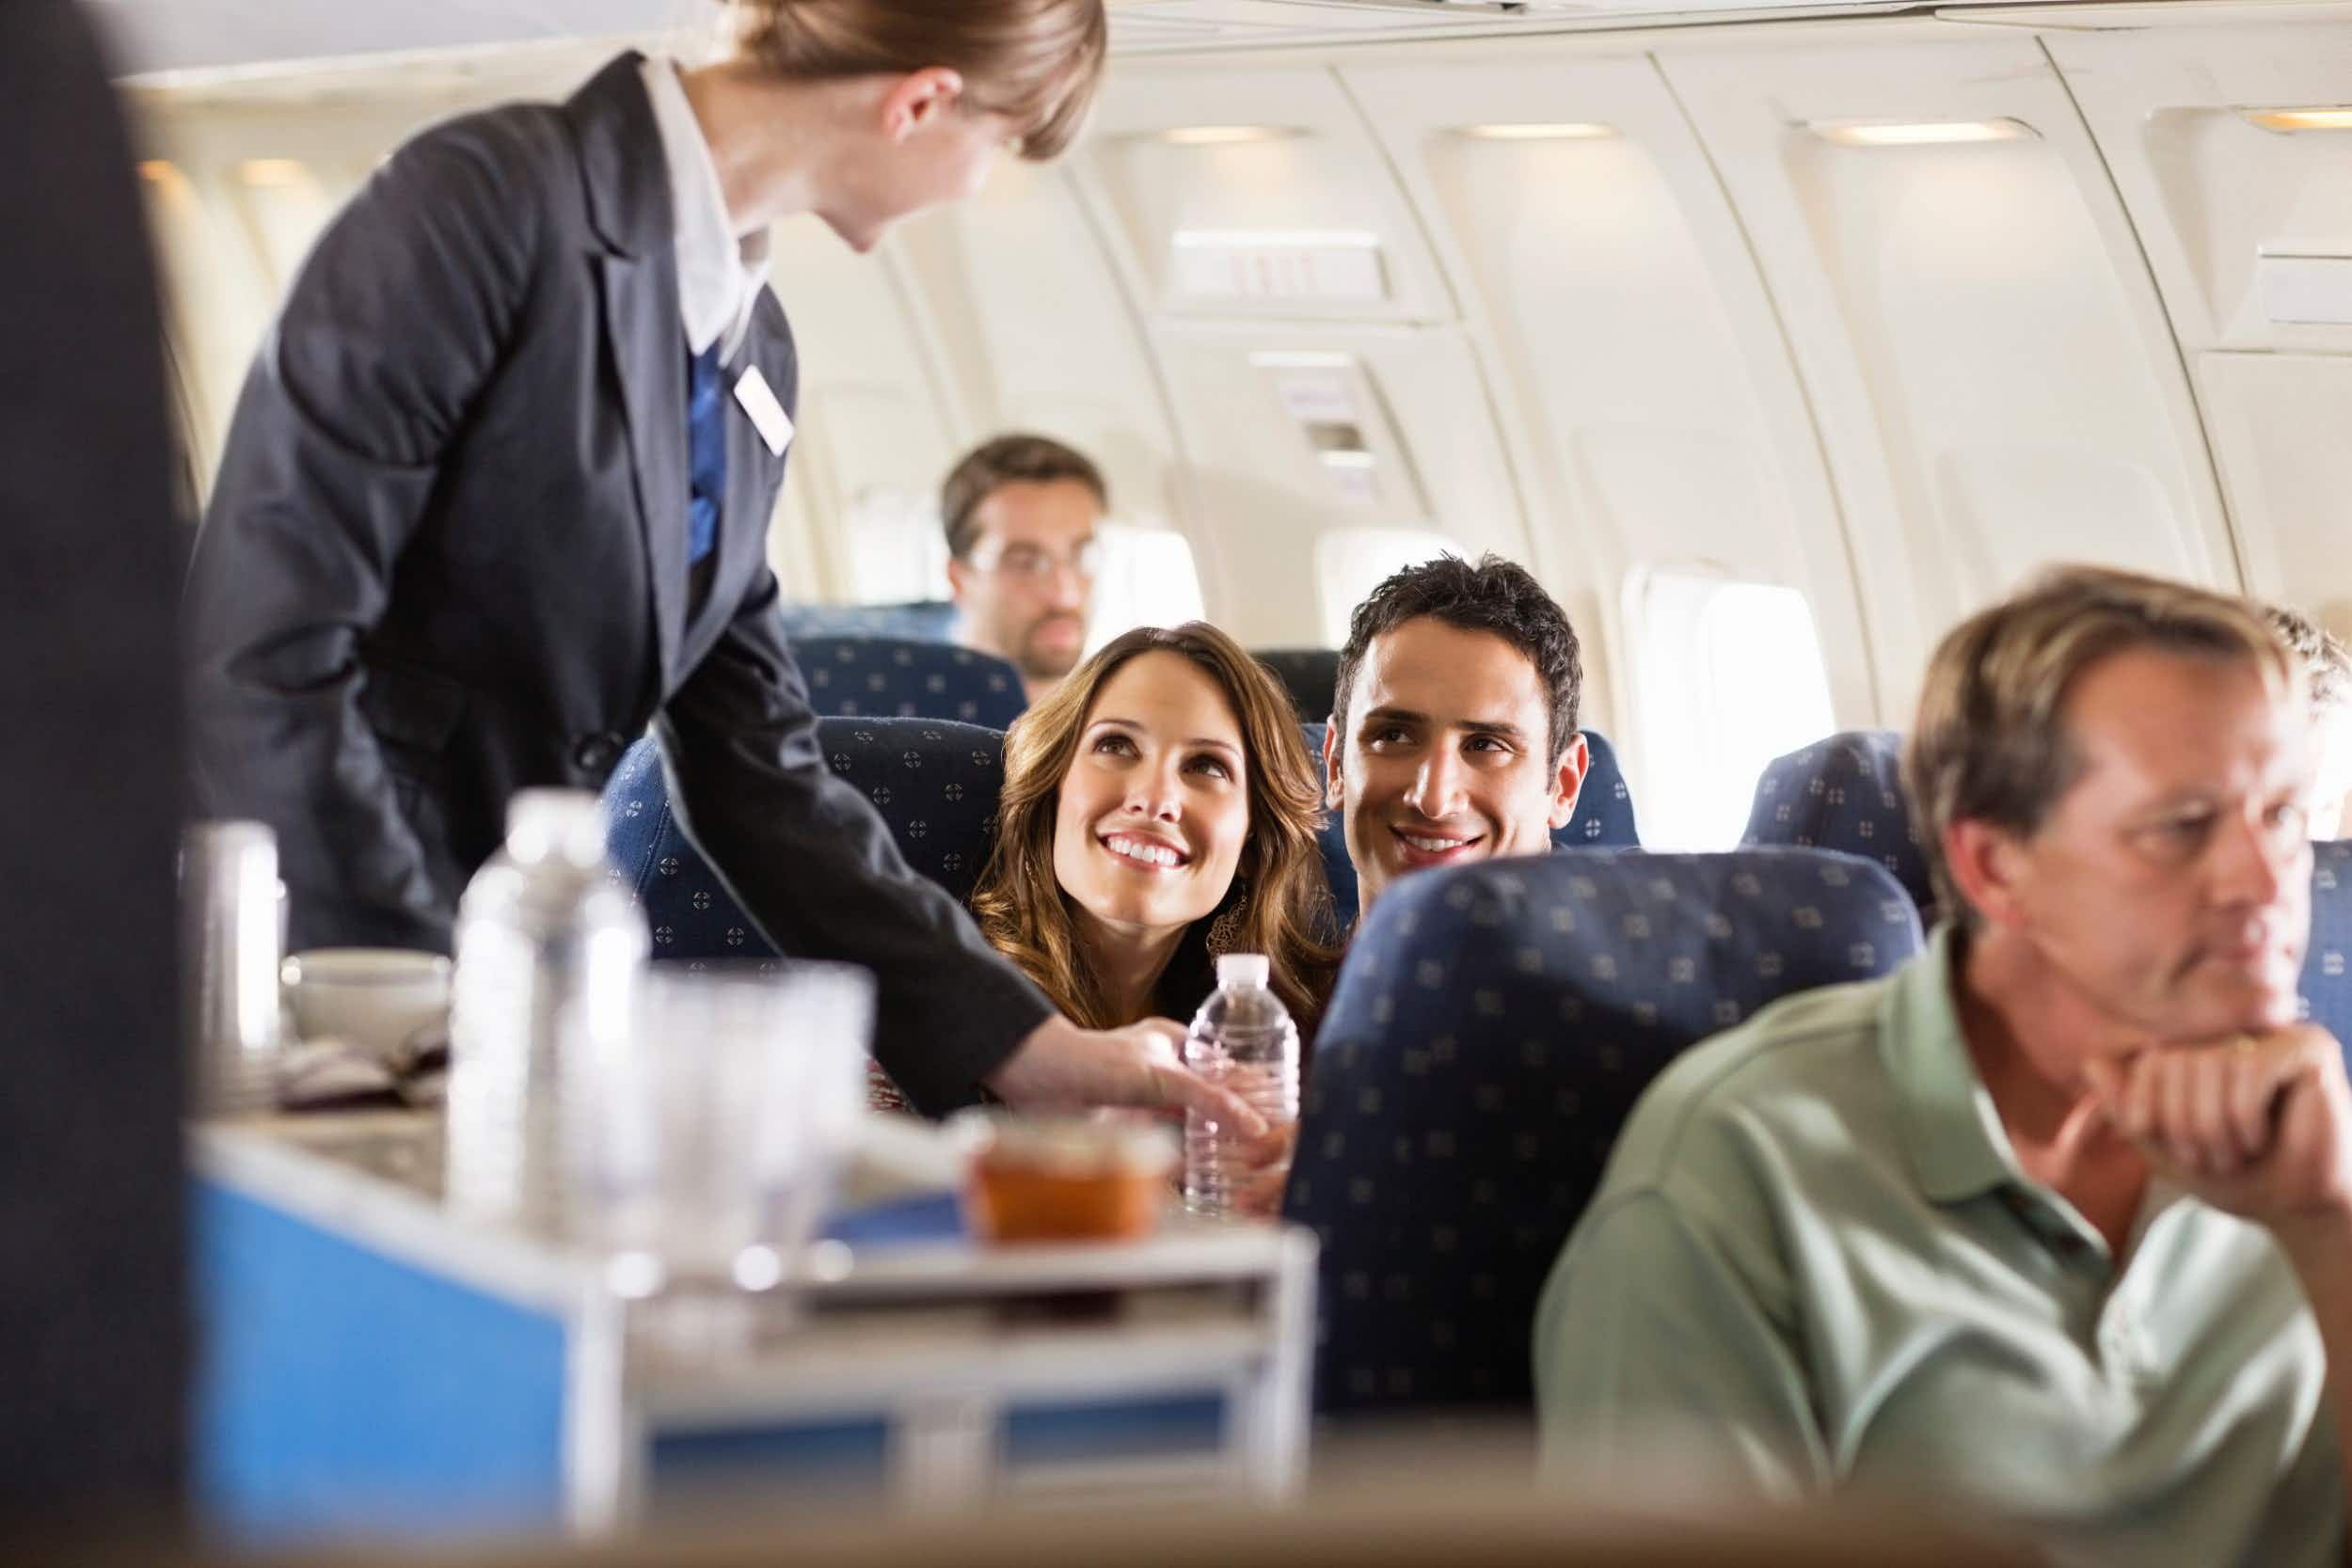 Cost is less important than in-flight services when it comes to keeping passengers happy © Compassionate Eye Foundation/Justin Pumfrey